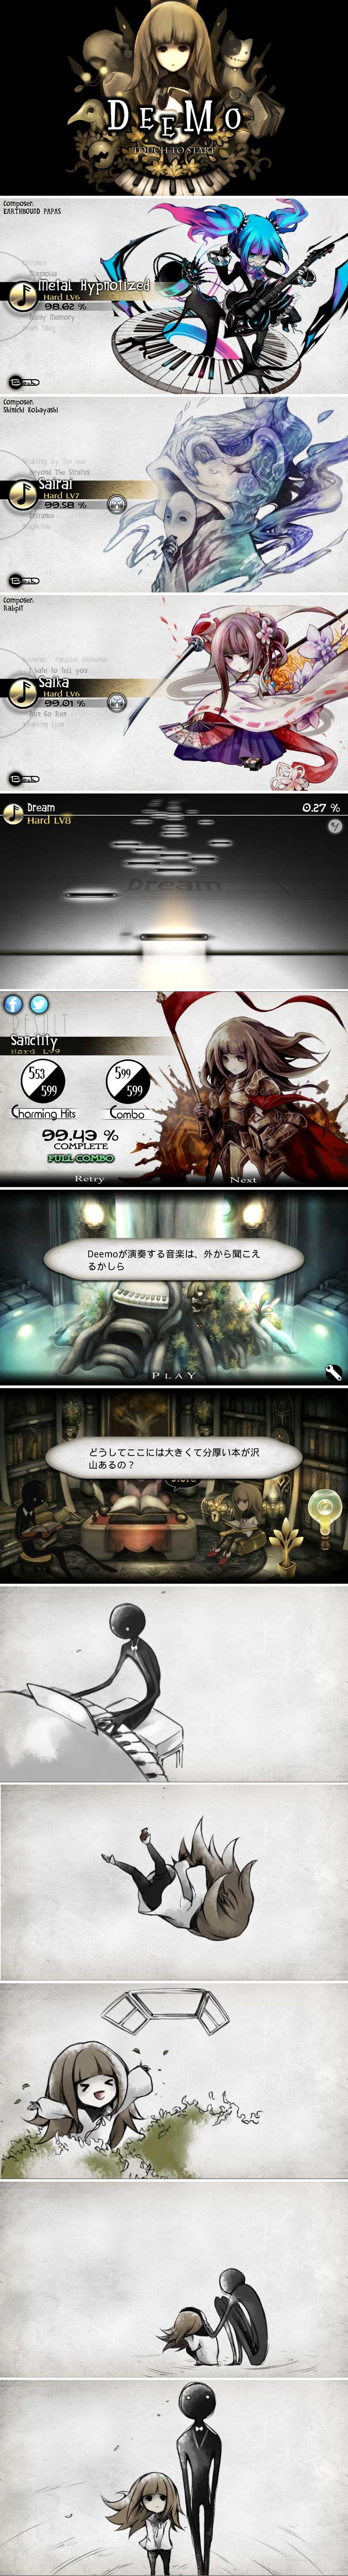 Deemo/ヴィジュアル/Rayark (Please download this game! D:)